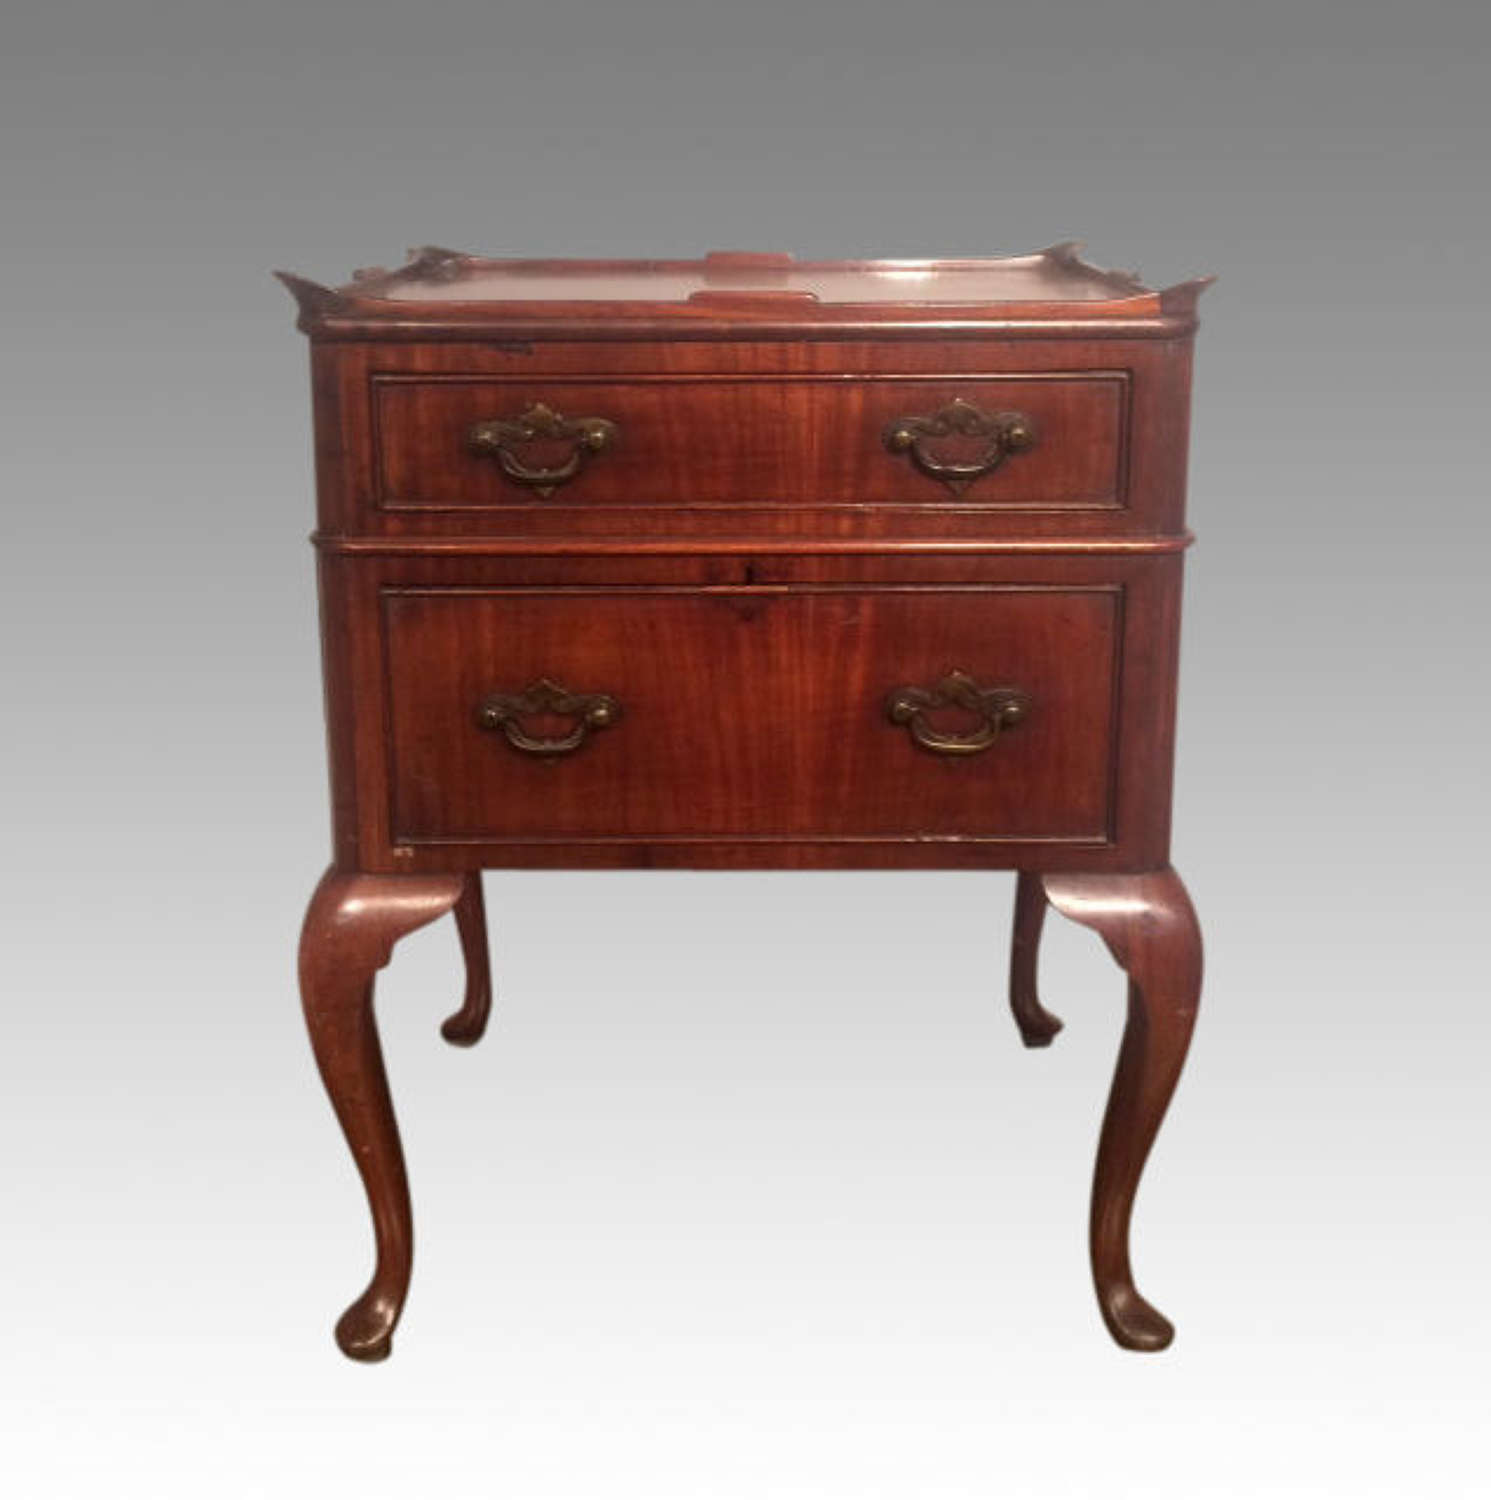 19th century antique mahogany cabriole leg bedside table